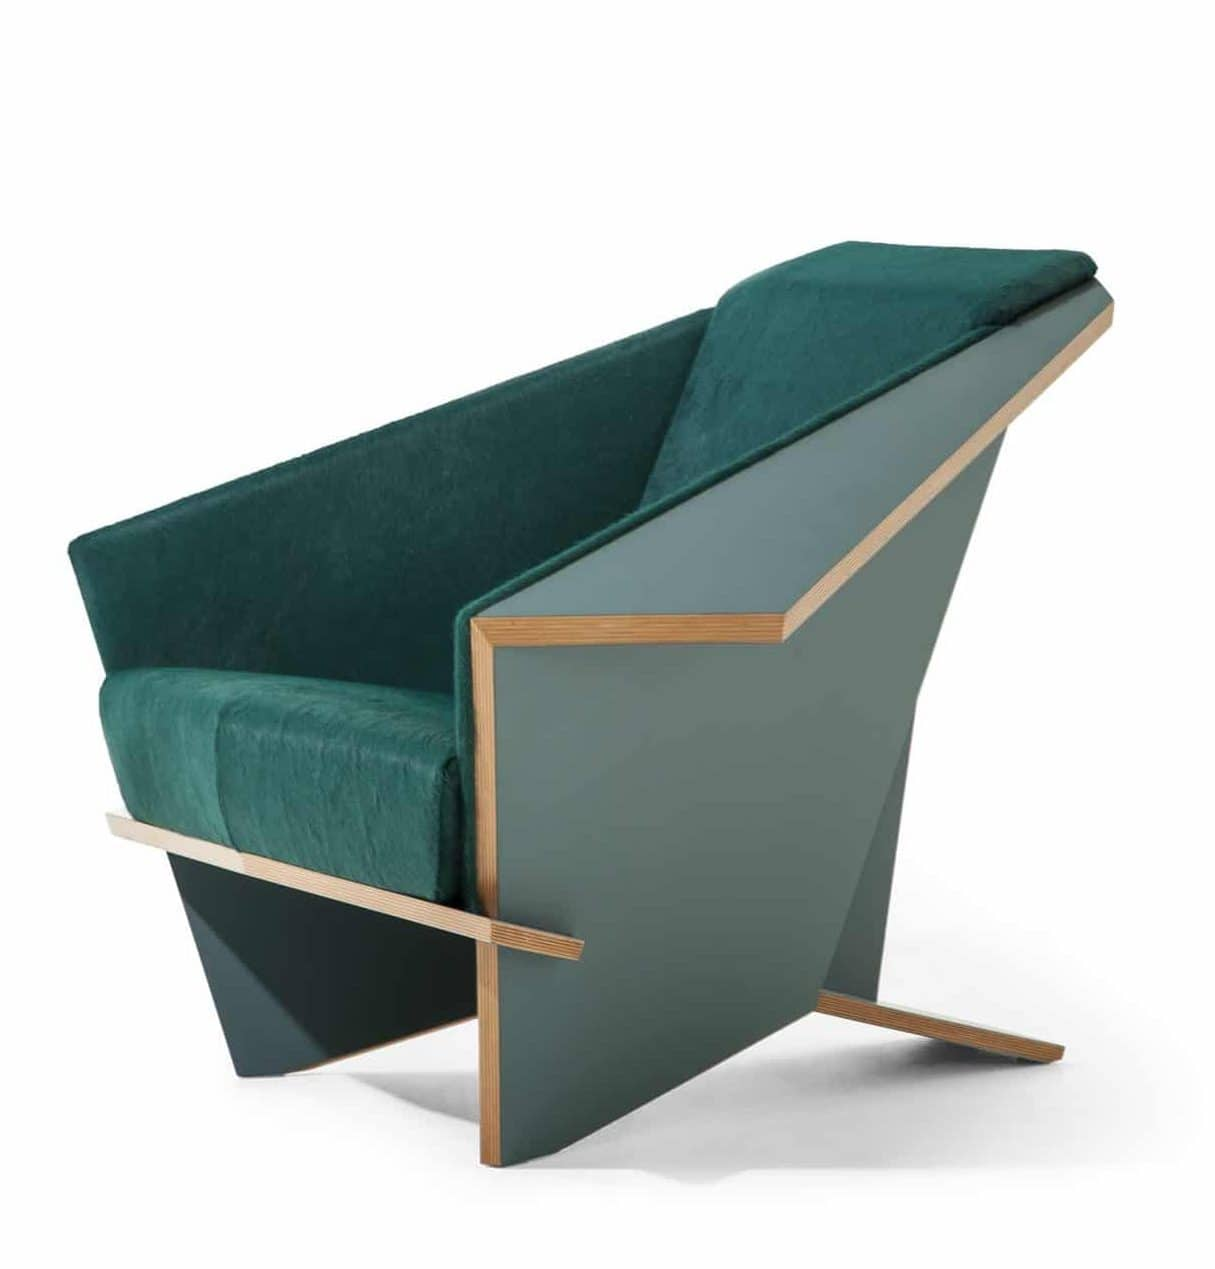 frank lloyd wright chairs upholstered dining with arms uk cassina foundation partner to bring designed photo by s p a